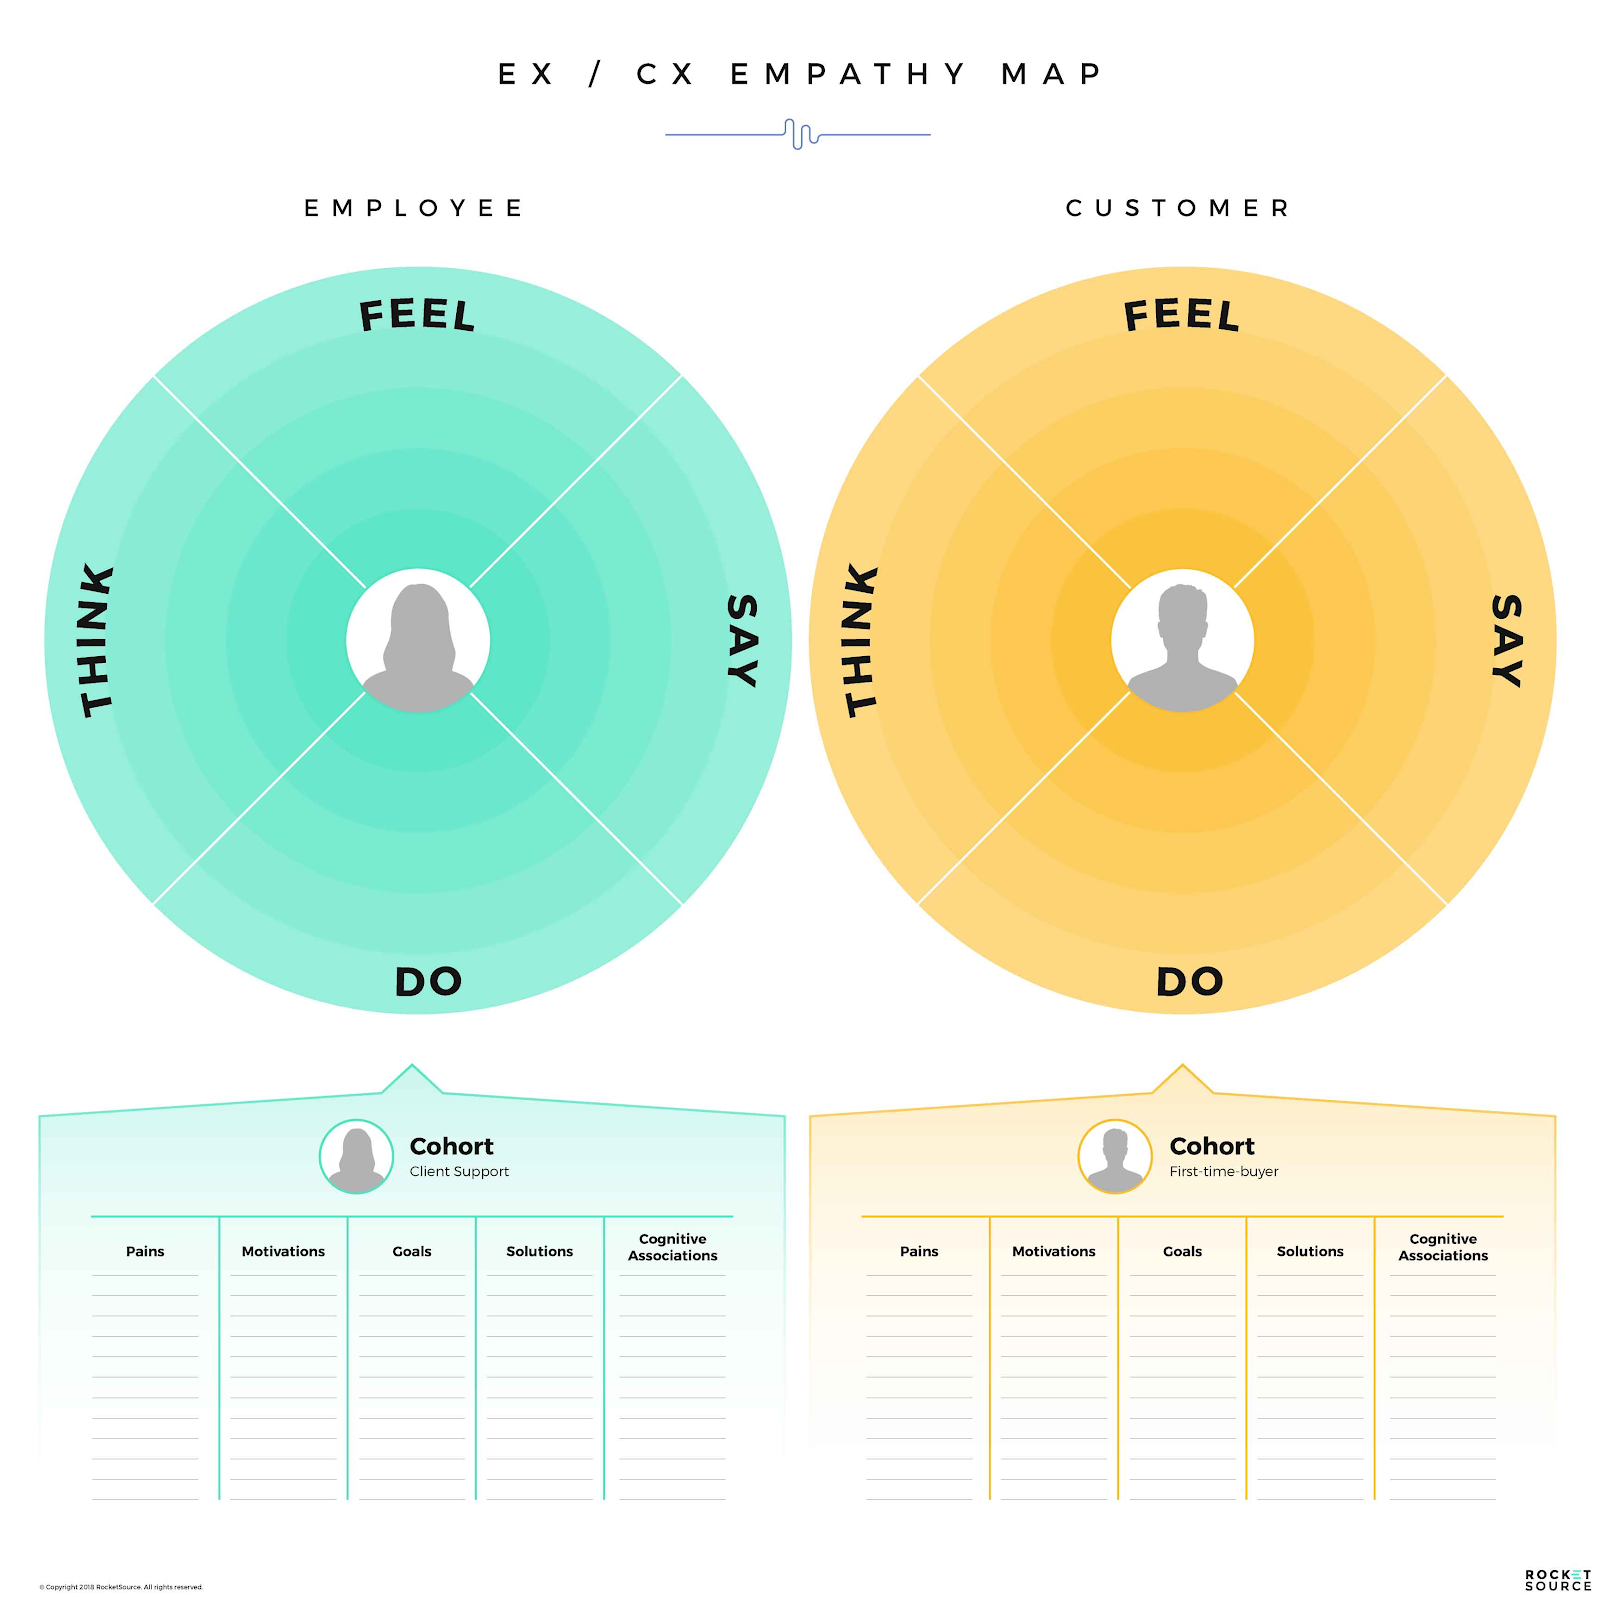 Empathy Mapping and Conversational Guidance